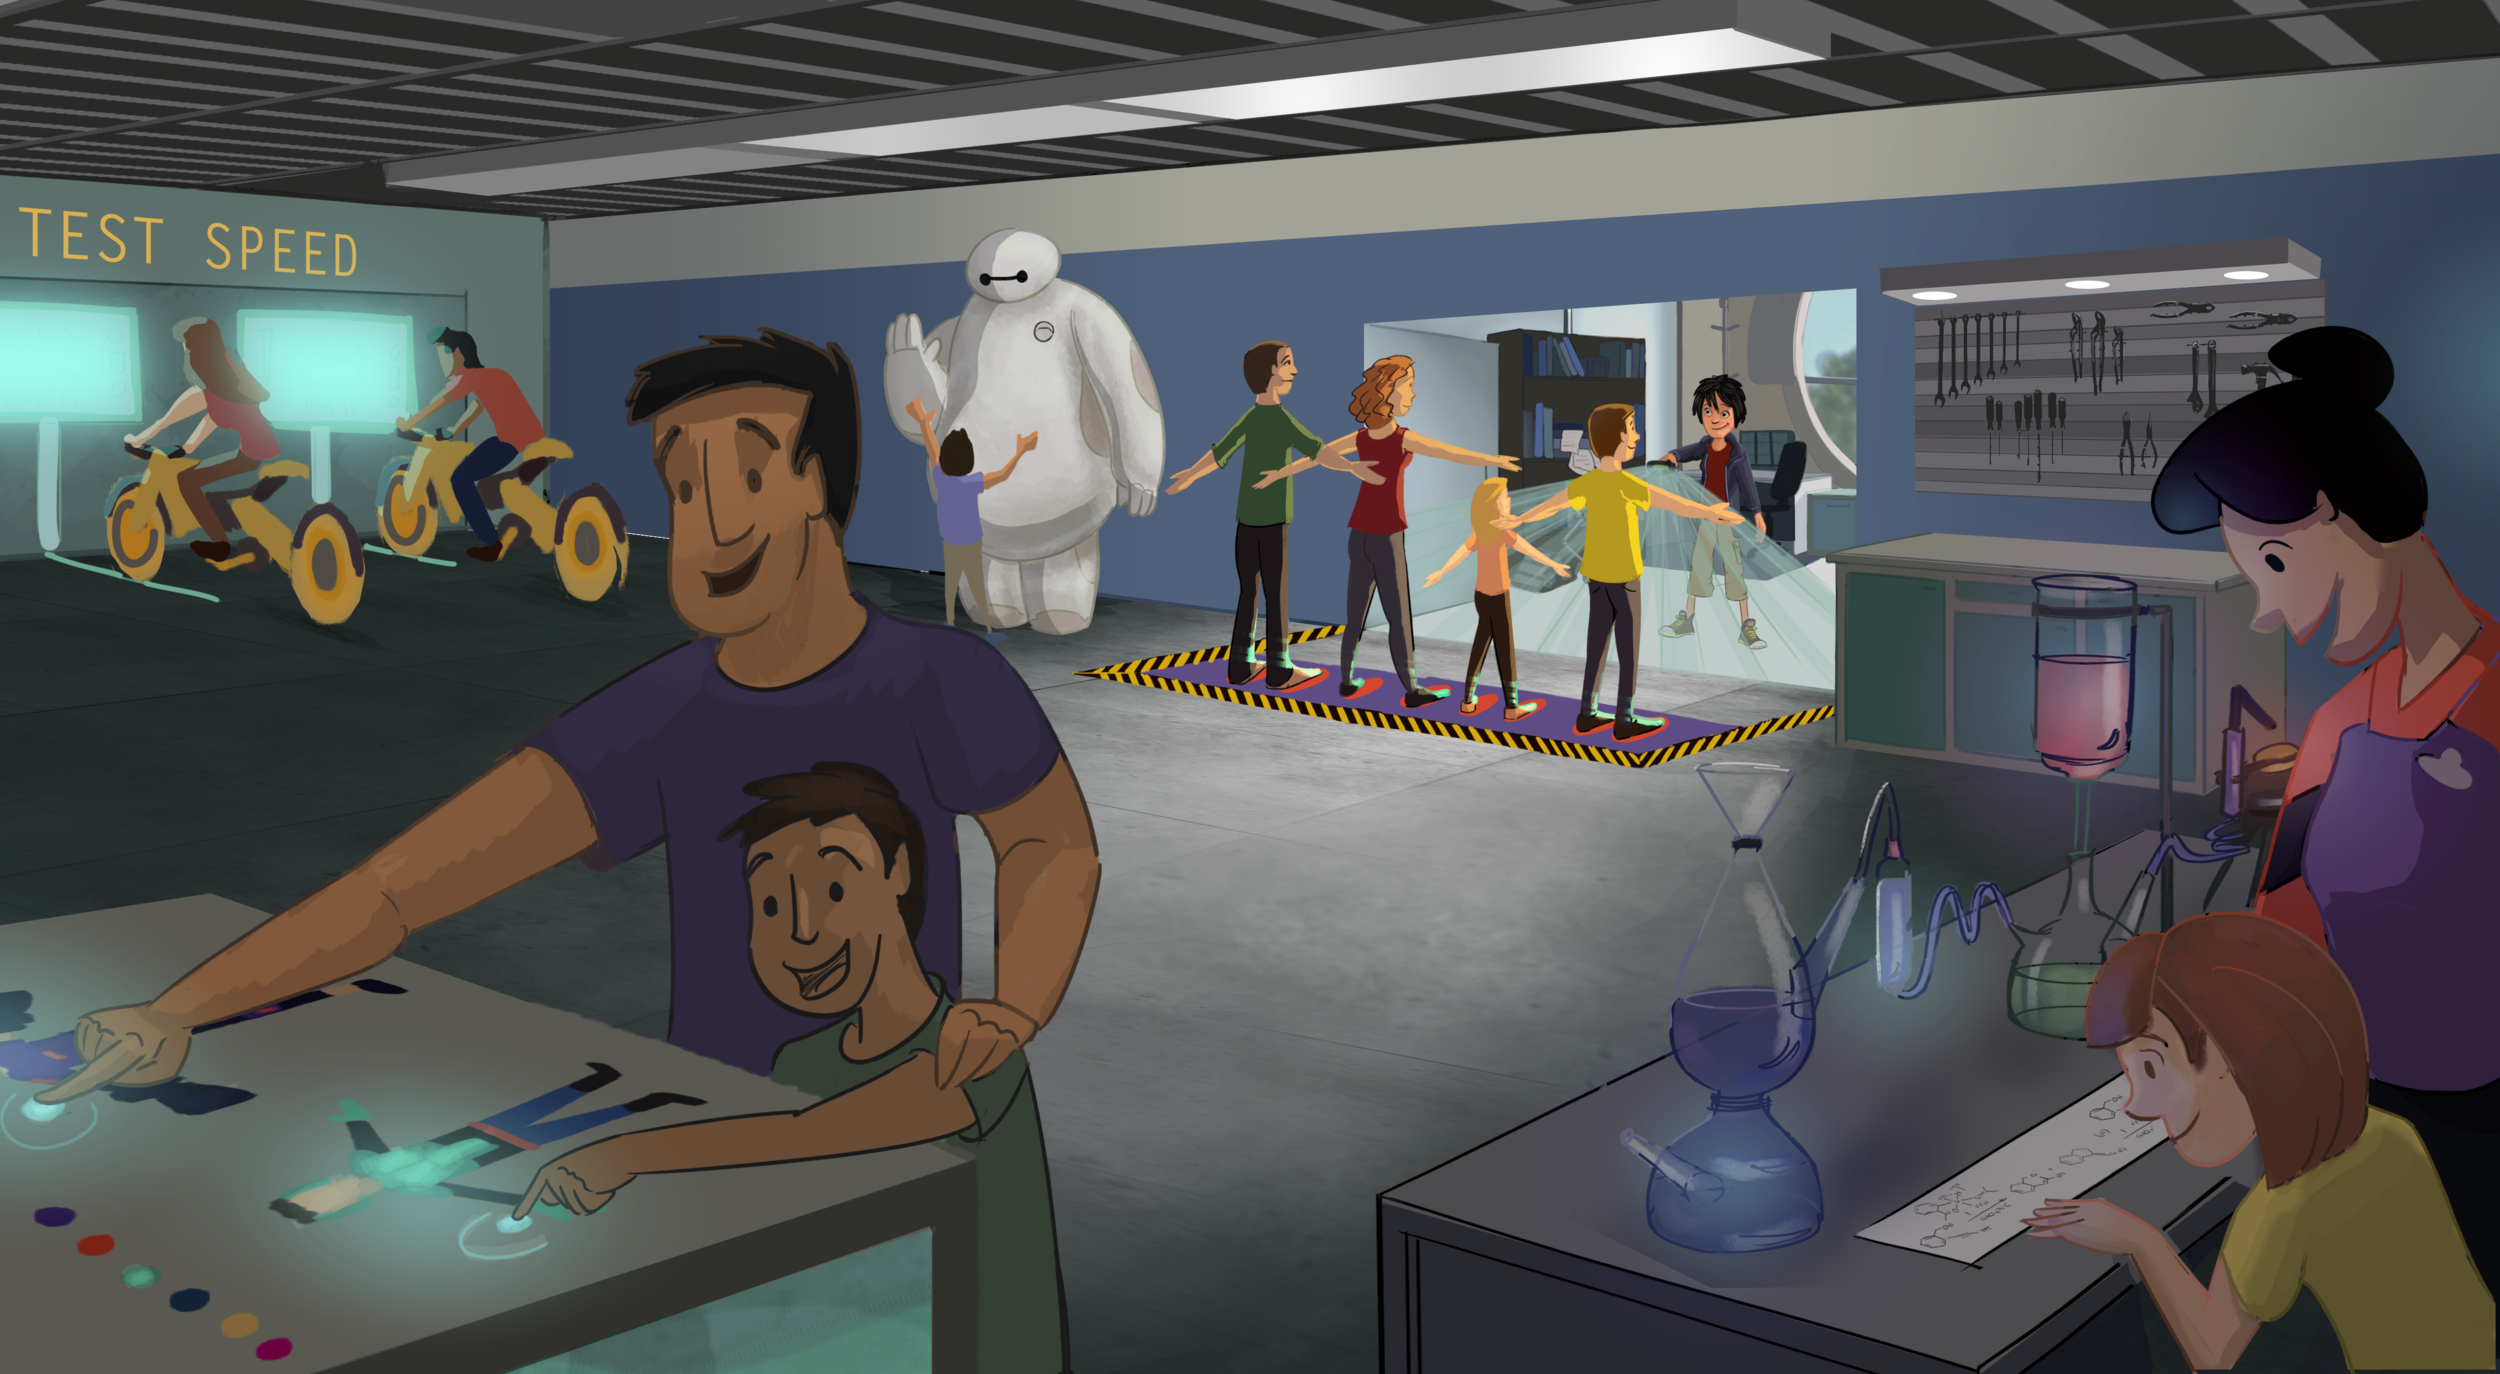 The Big Hero 6 Robotics lab, will give the opportunity for guests to explore new technologies and become a member of the team. Hiro will scan the new recruits and they will move to a touch table where they can customize their suit. Guests can also test Go-Go's bike, create new chemistry with Honey Lemon, and have a meet and greet with Baymax.